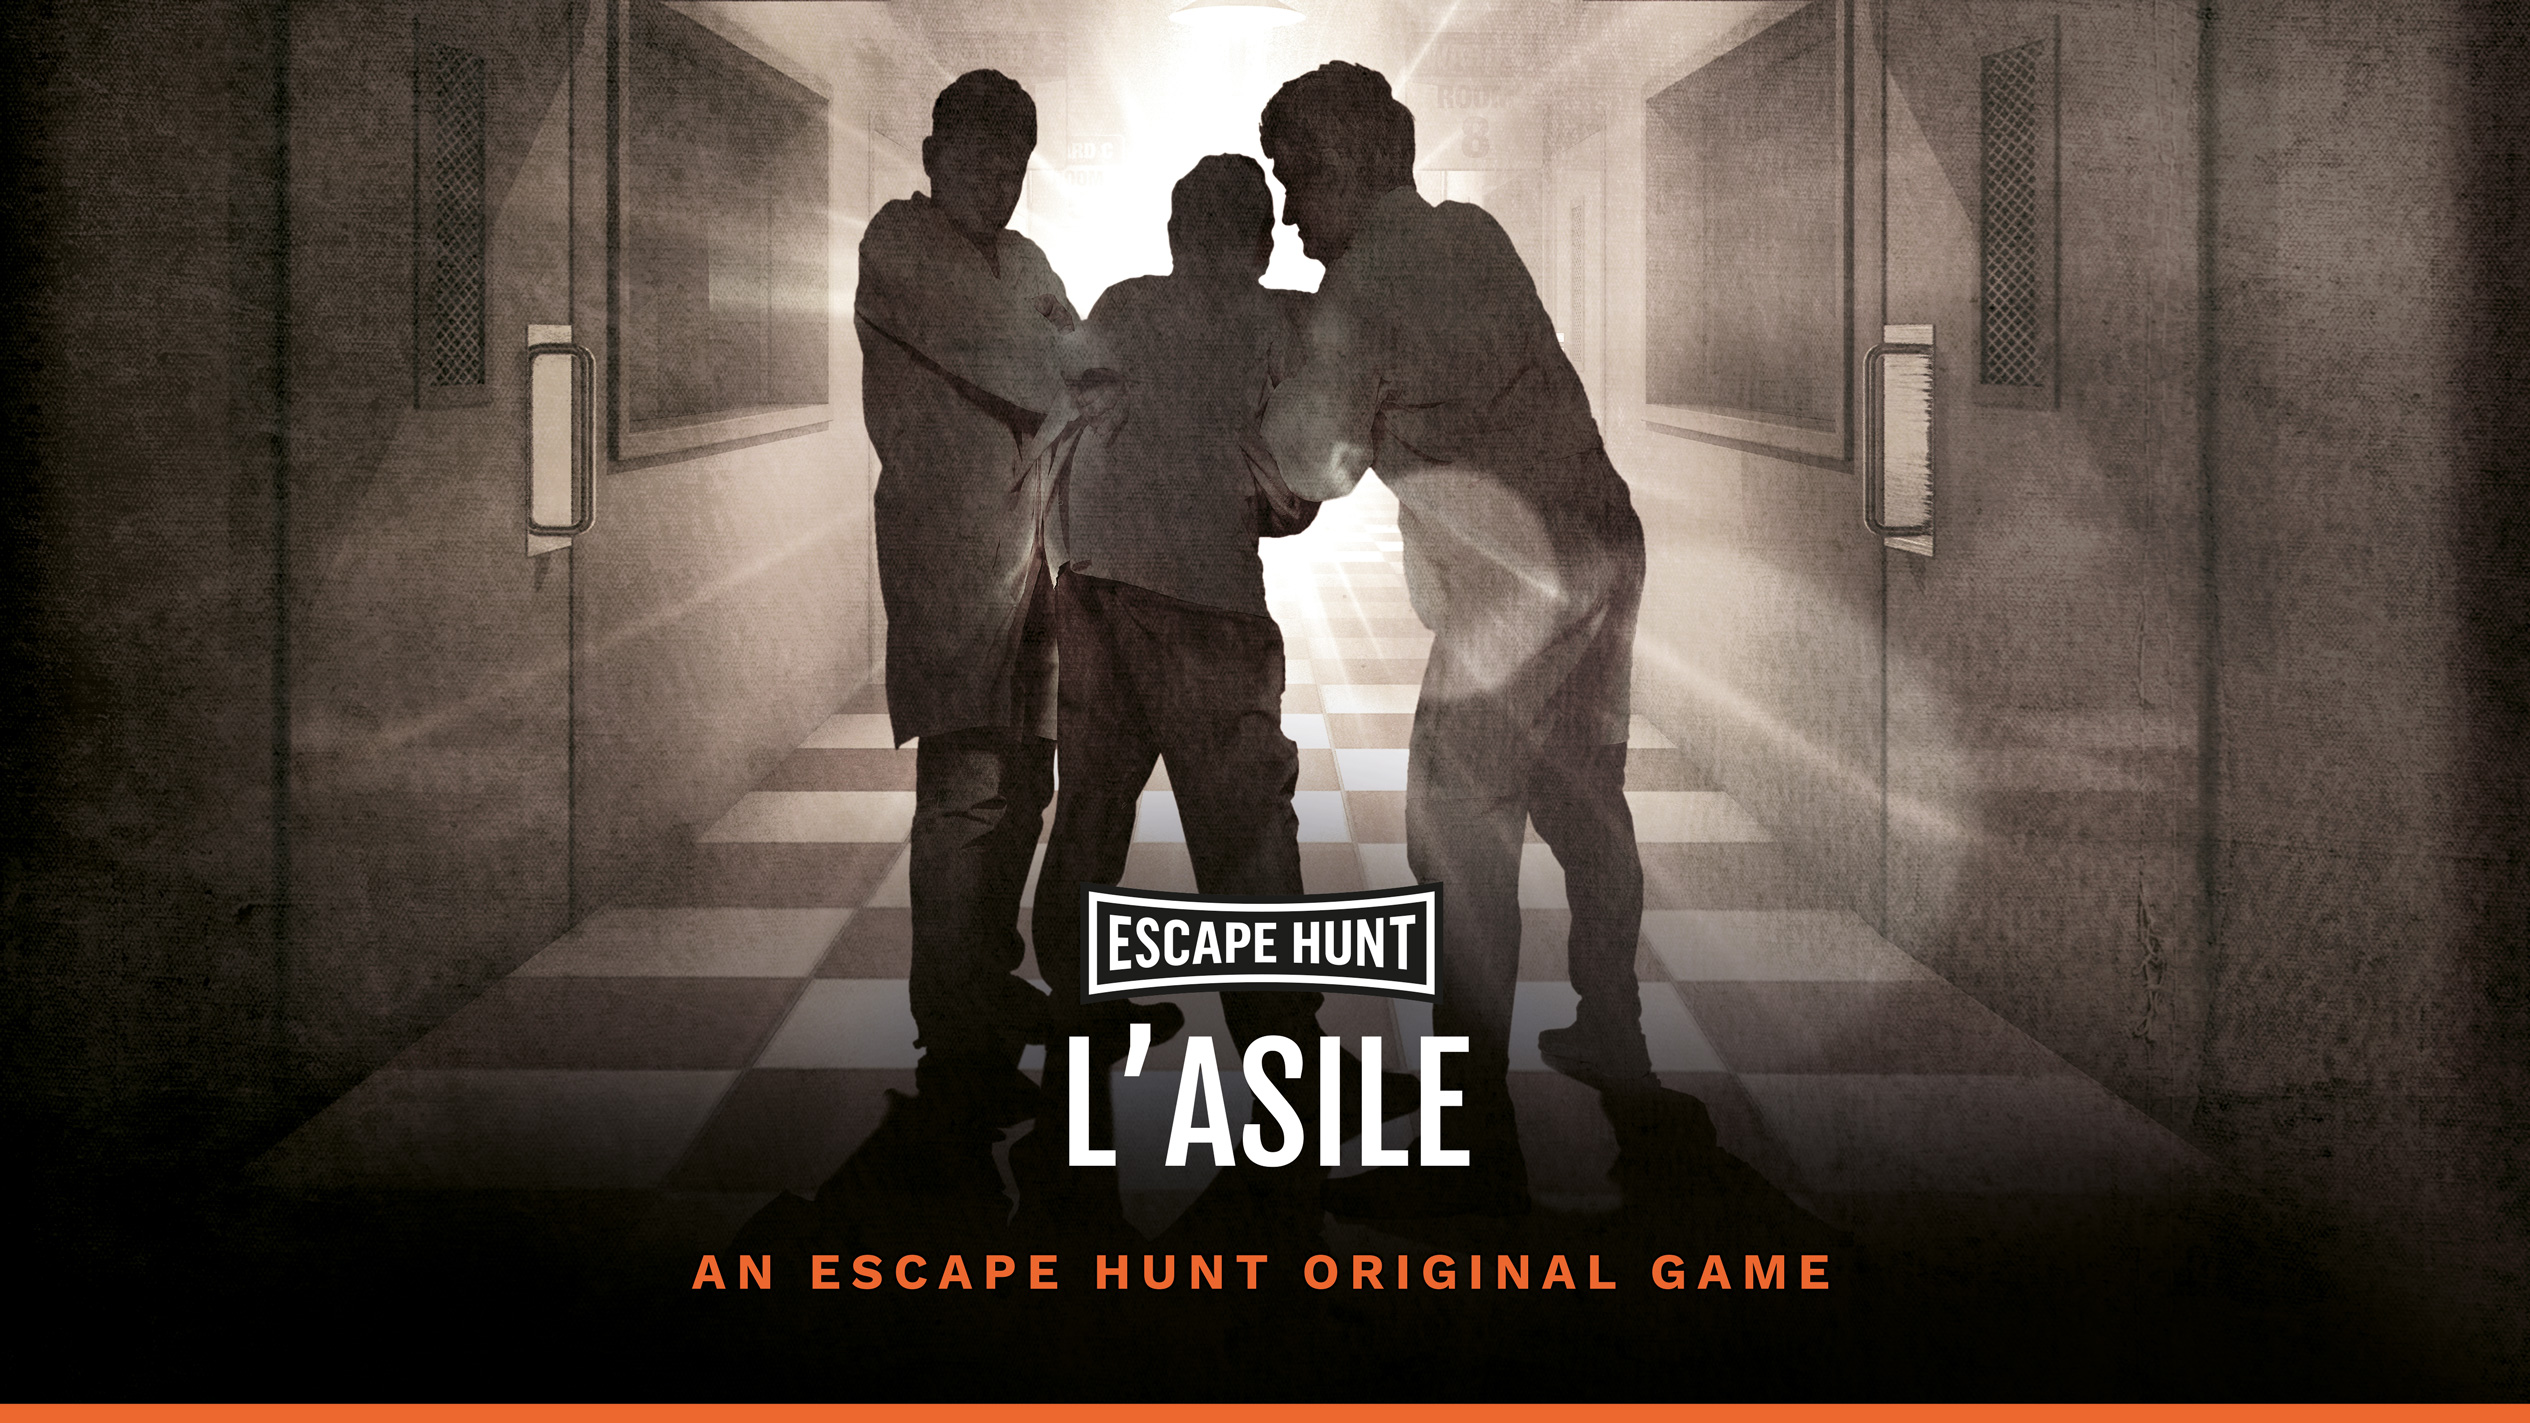 Escape Hunt Clermont Ferrand - Escape Game Clermont Ferrand L'asile